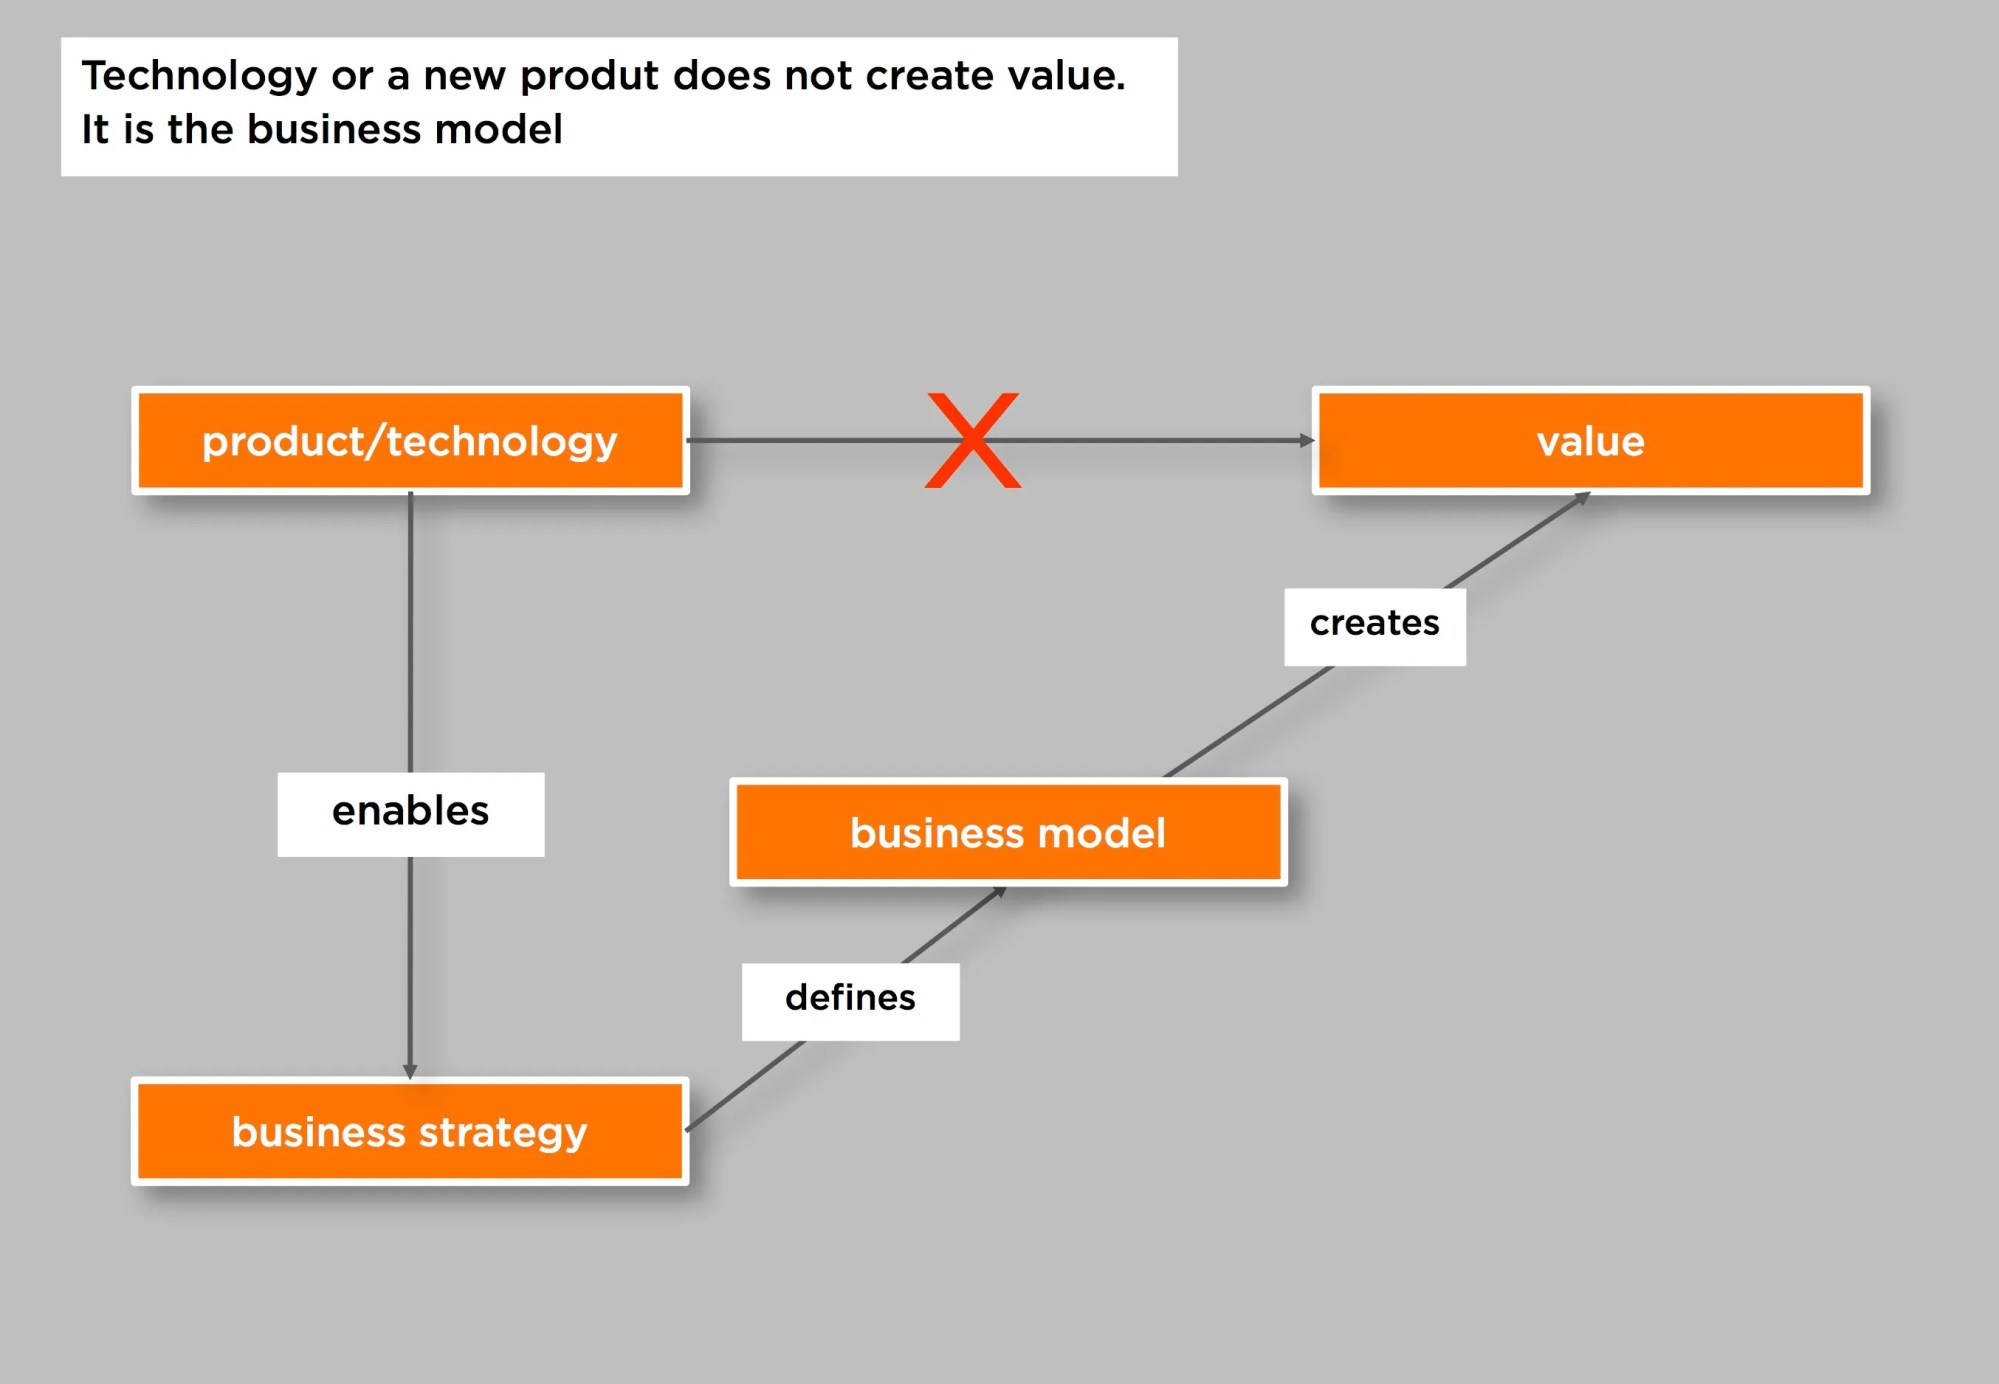 hight resolution of the business model creates the value not directly the technology